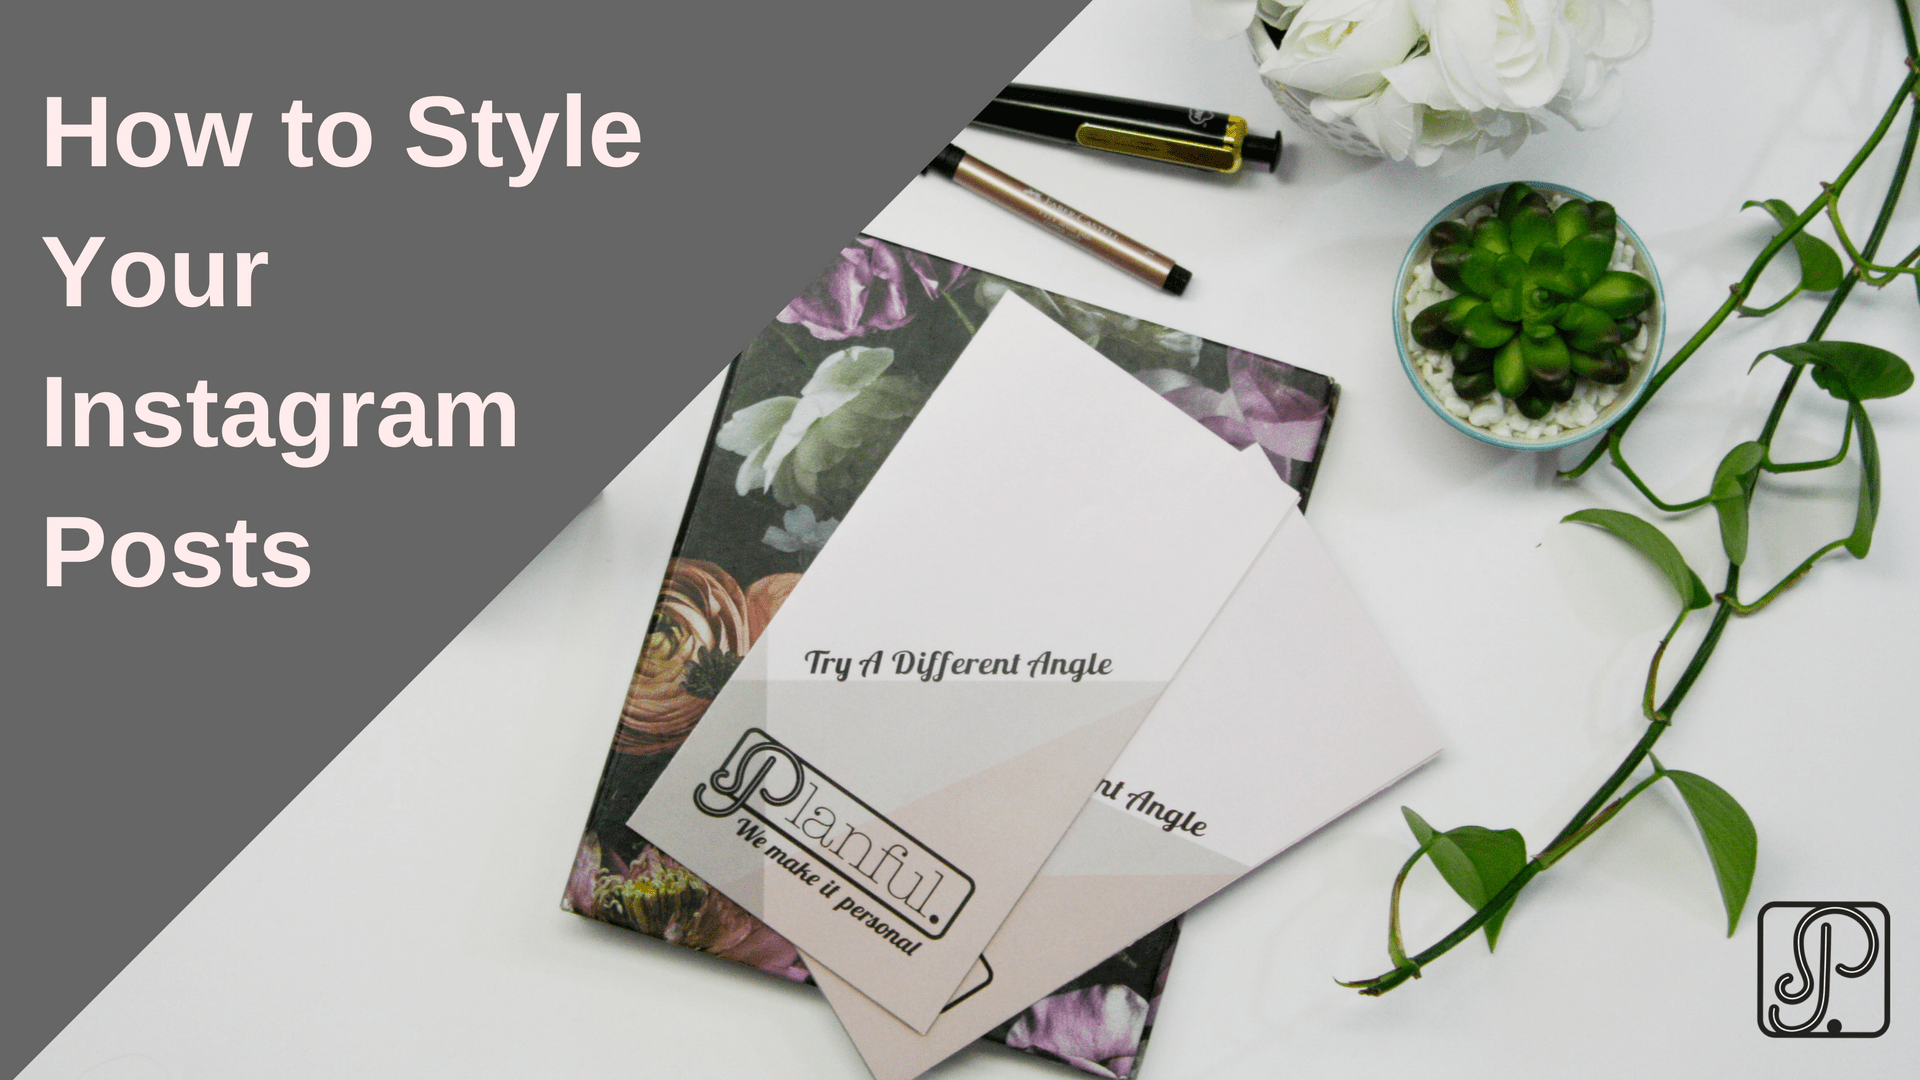 how to style your Instagram posts